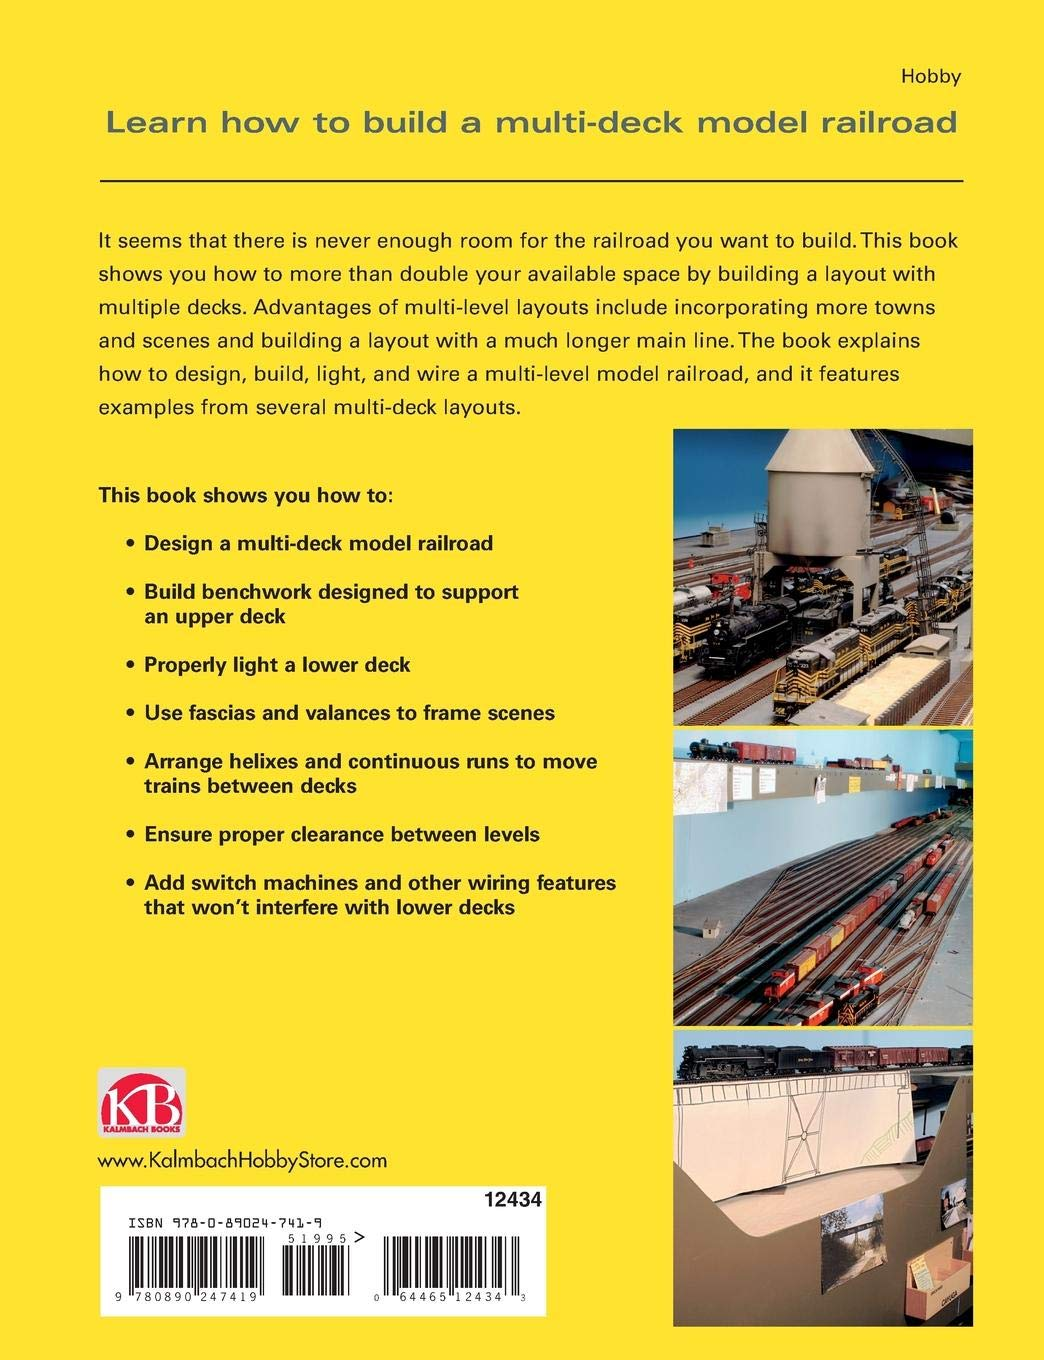 Designing Building Multi Deck Model Railroads Railroader Railroad Dcc Wiring How To Build A Train Layouts G Z S Tony Koester 0884464038515 Books